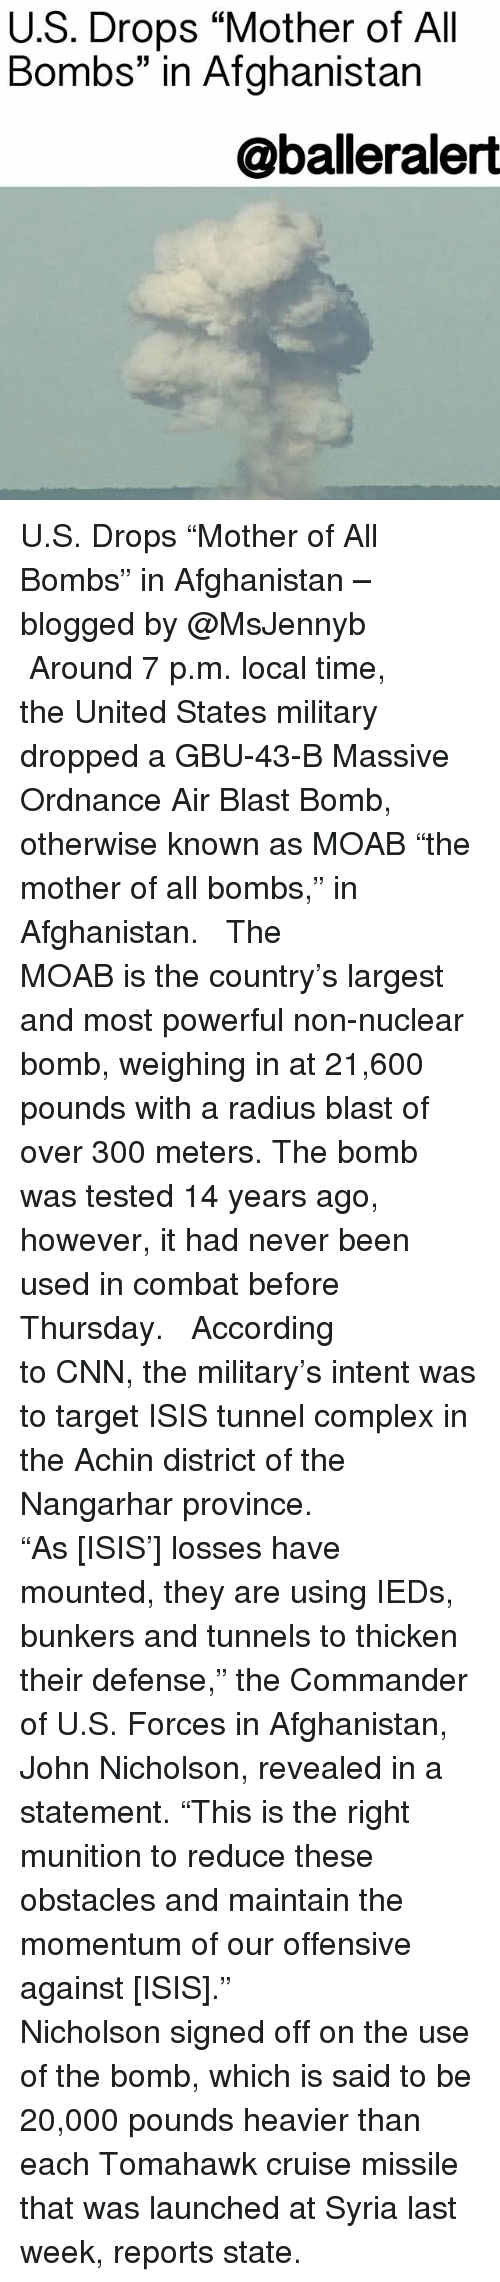 """cnn.com, Complex, and Isis: U.S. Drops """"Mother of All  Bombs"""" in Afghanistan  @balleralert U.S. Drops """"Mother of All Bombs"""" in Afghanistan – blogged by @MsJennyb ⠀⠀⠀⠀⠀⠀⠀ ⠀⠀⠀⠀⠀⠀⠀ Around 7 p.m. local time, the United States military dropped a GBU-43-B Massive Ordnance Air Blast Bomb, otherwise known as MOAB """"the mother of all bombs,"""" in Afghanistan. ⠀⠀⠀⠀⠀⠀⠀ ⠀⠀⠀⠀⠀⠀⠀ The MOAB is the country's largest and most powerful non-nuclear bomb, weighing in at 21,600 pounds with a radius blast of over 300 meters. The bomb was tested 14 years ago, however, it had never been used in combat before Thursday. ⠀⠀⠀⠀⠀⠀⠀ ⠀⠀⠀⠀⠀⠀⠀ According to CNN, the military's intent was to target ISIS tunnel complex in the Achin district of the Nangarhar province. ⠀⠀⠀⠀⠀⠀⠀ ⠀⠀⠀⠀⠀⠀⠀ """"As [ISIS'] losses have mounted, they are using IEDs, bunkers and tunnels to thicken their defense,"""" the Commander of U.S. Forces in Afghanistan, John Nicholson, revealed in a statement. """"This is the right munition to reduce these obstacles and maintain the momentum of our offensive against [ISIS]."""" ⠀⠀⠀⠀⠀⠀⠀ ⠀⠀⠀⠀⠀⠀⠀ Nicholson signed off on the use of the bomb, which is said to be 20,000 pounds heavier than each Tomahawk cruise missile that was launched at Syria last week, reports state."""